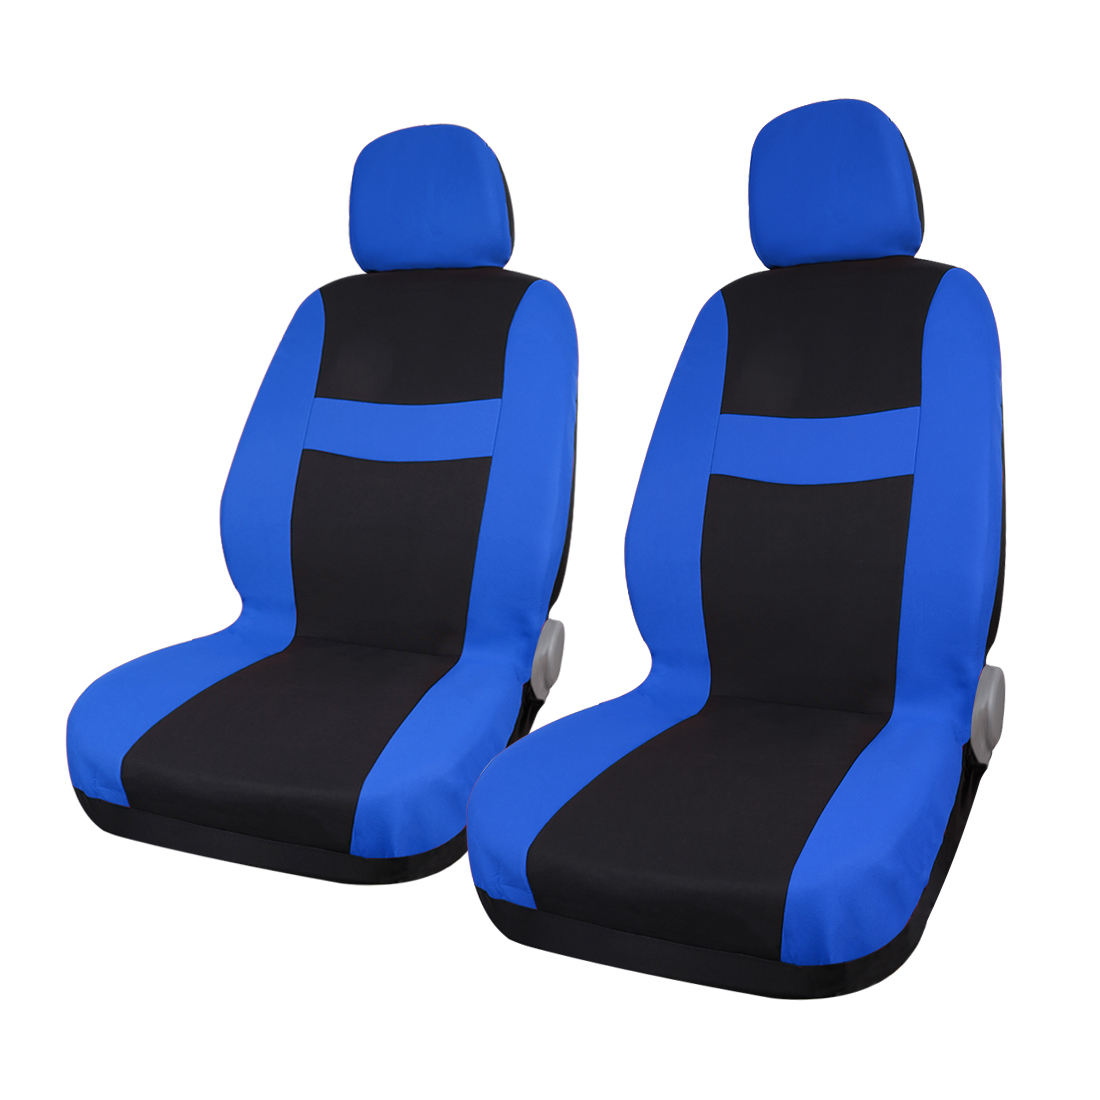 Blue Black Car Seat Covers with Headrest for Auto Truck